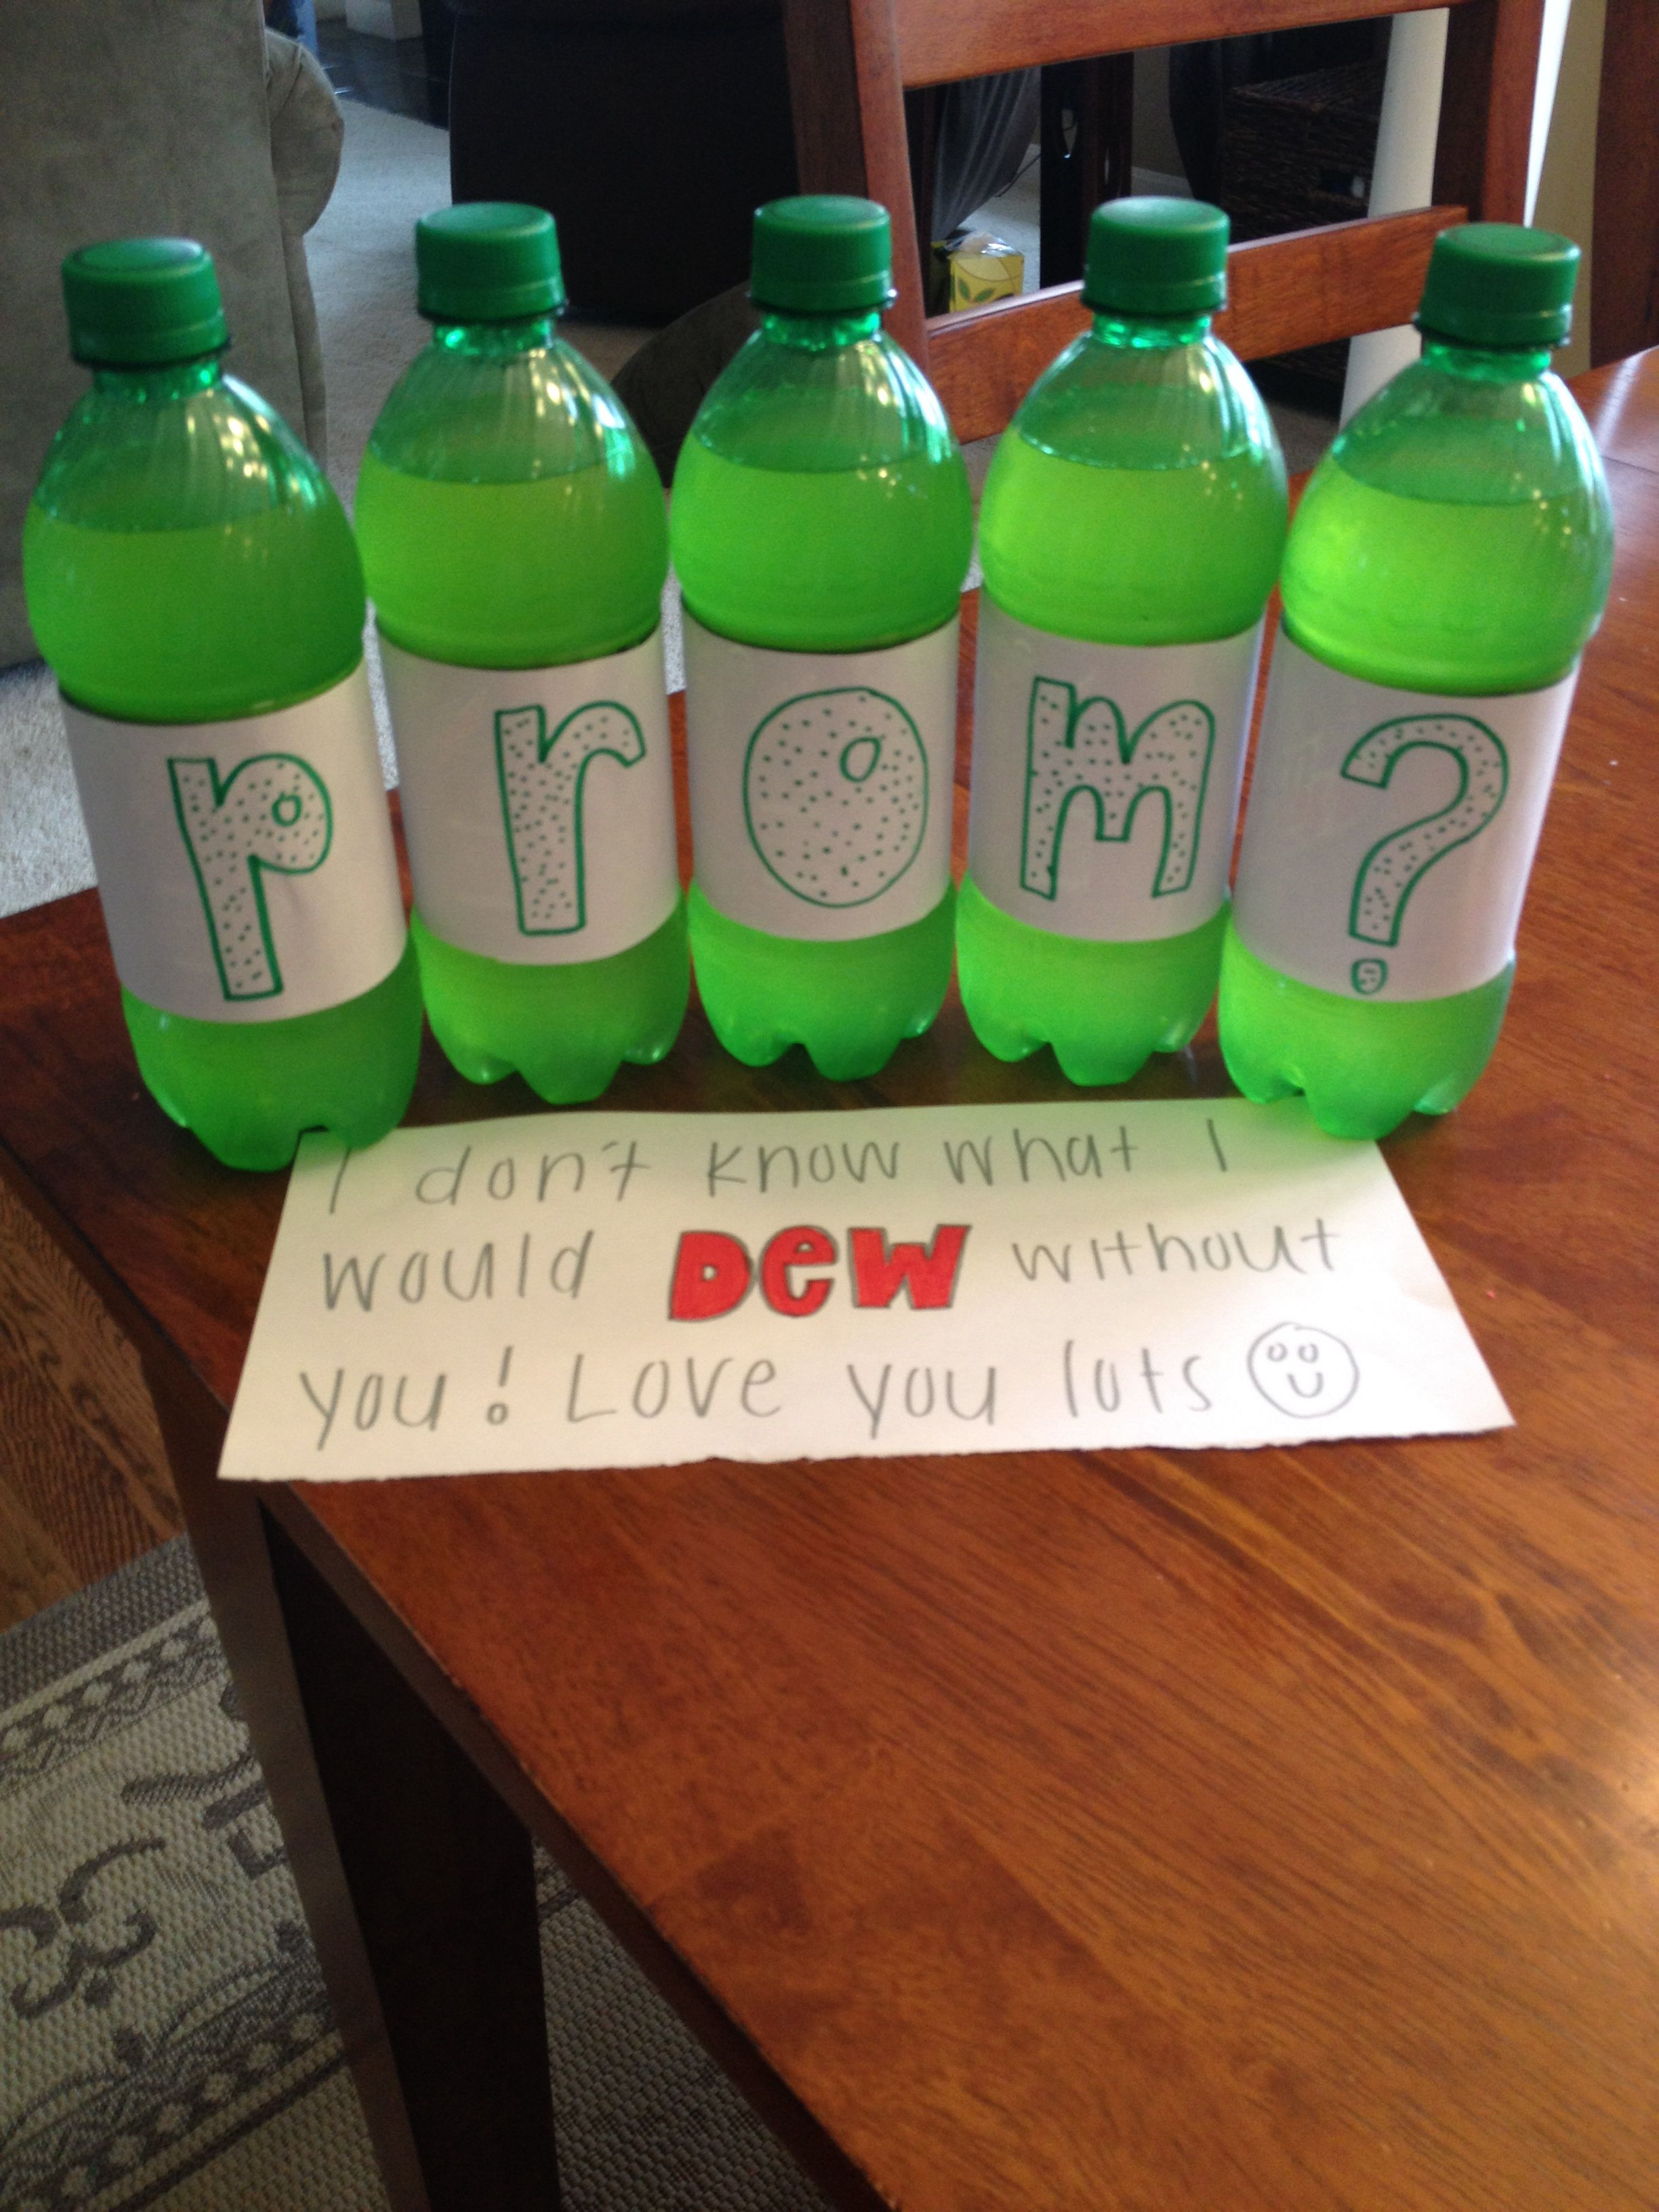 promposal for my boyfriend who loves mountain dew | prom in 2018